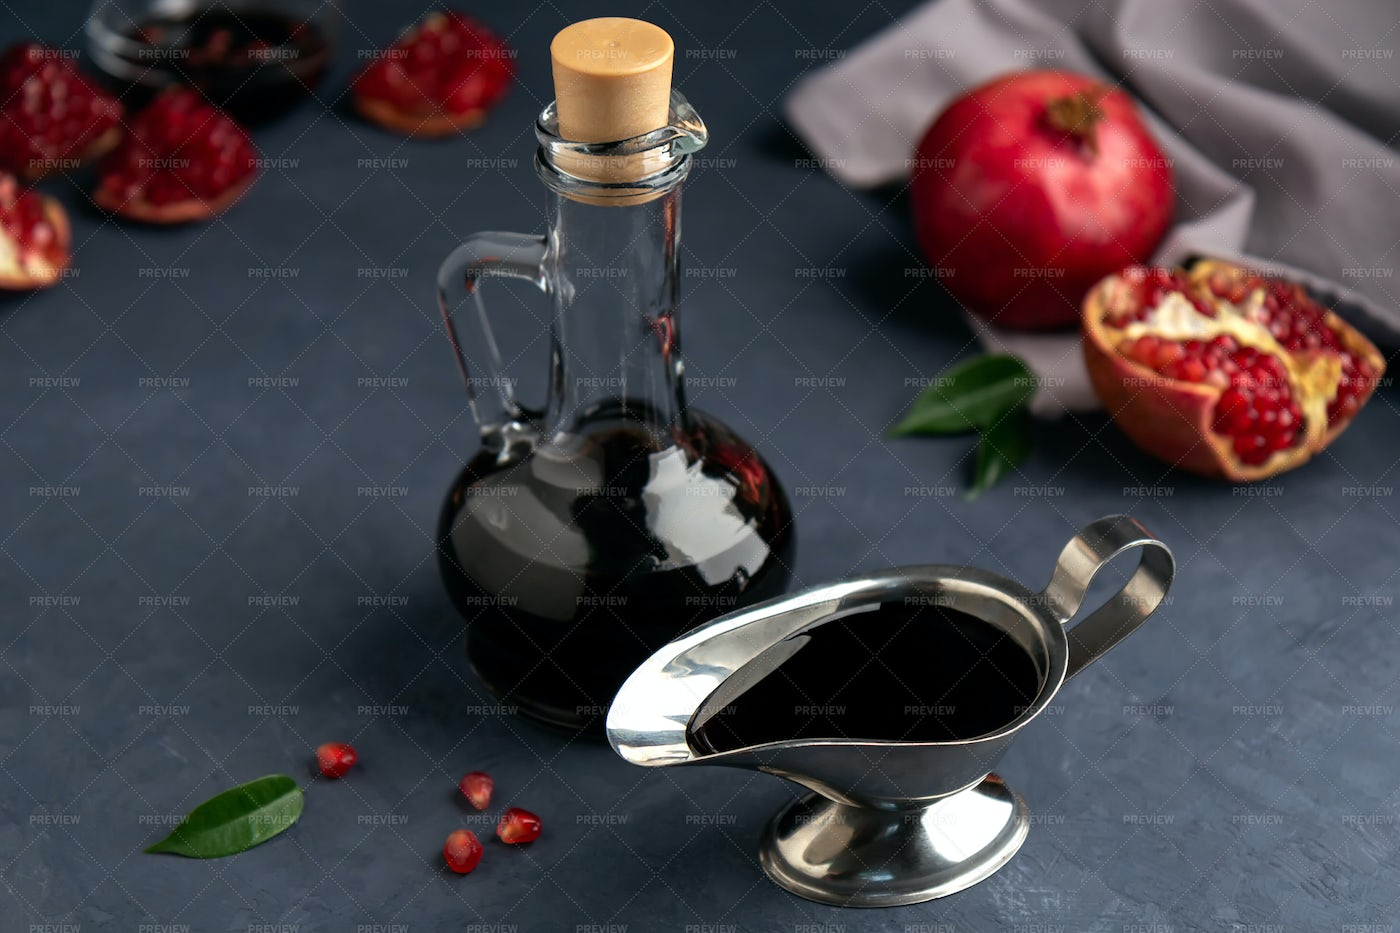 Pomegranate Sauce In A Bottle: Stock Photos